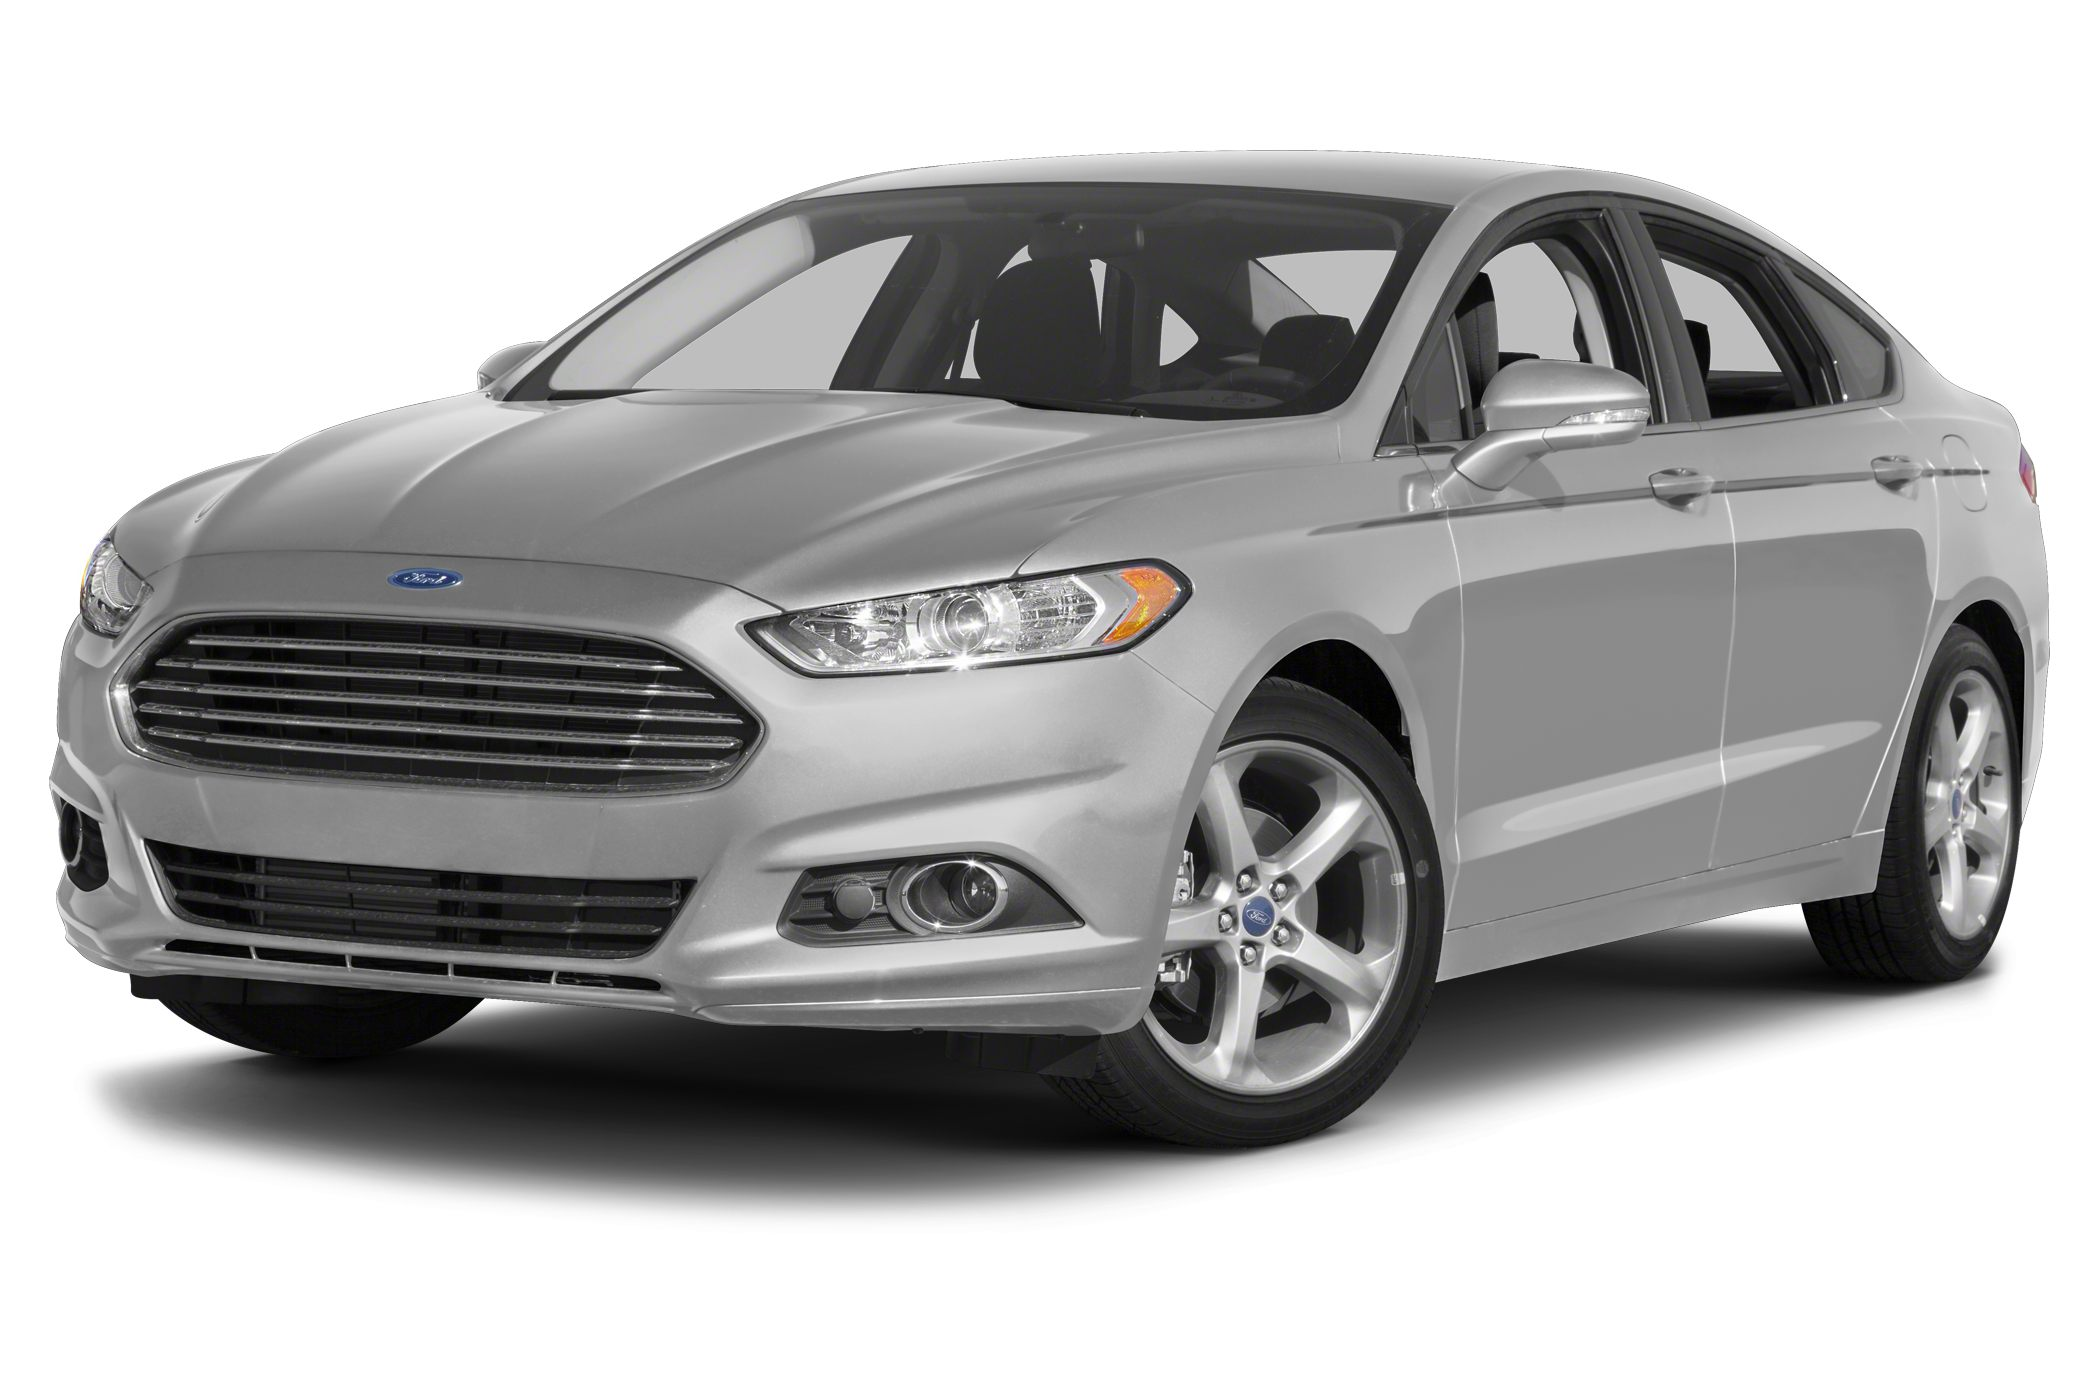 2013 Ford Fusion SE Sedan for sale in Summersville for $20,625 with 27,302 miles